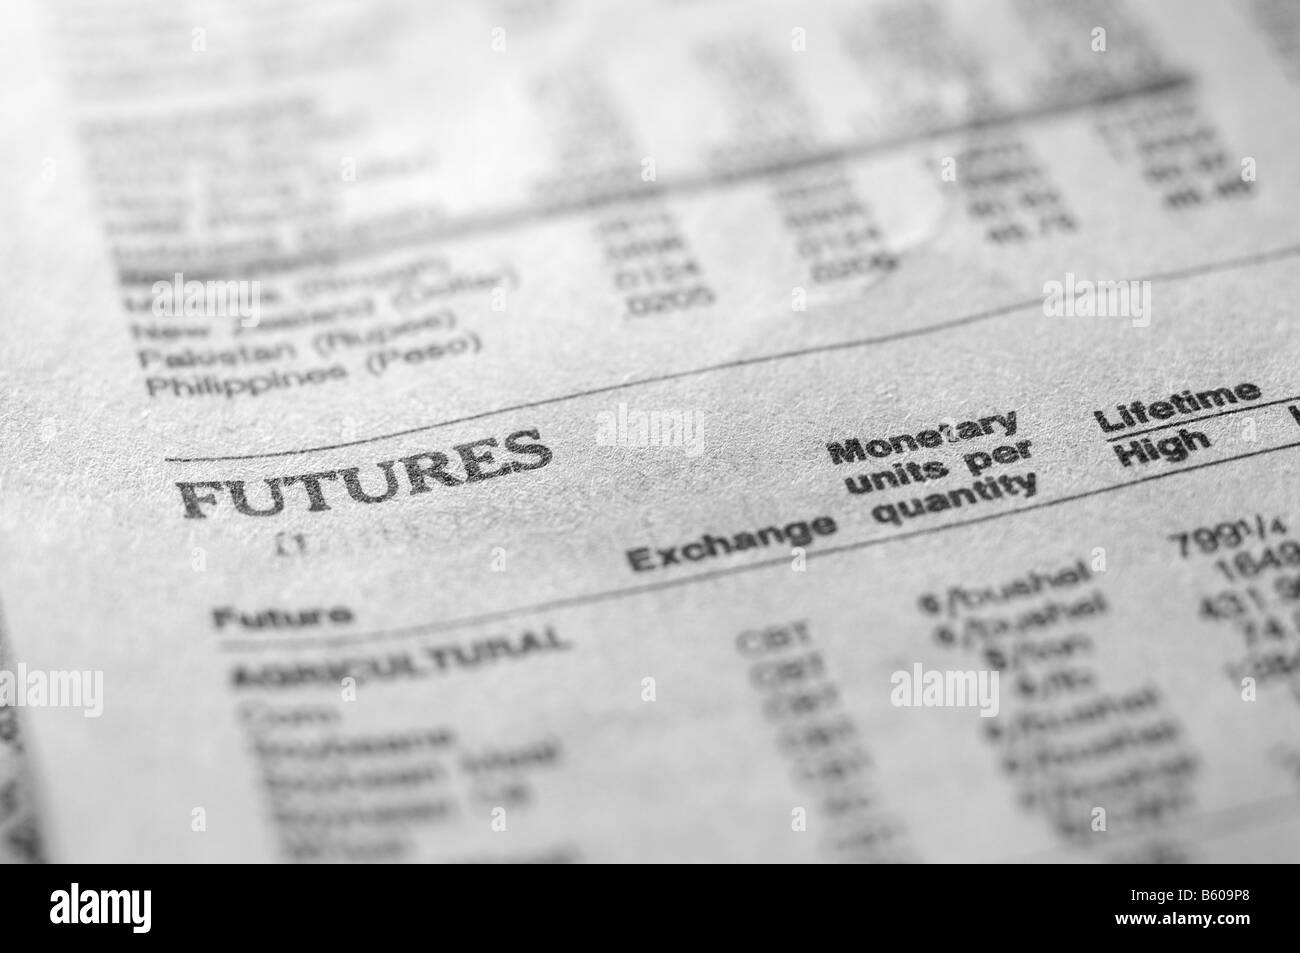 Futures section of business newspaper. - Stock Image